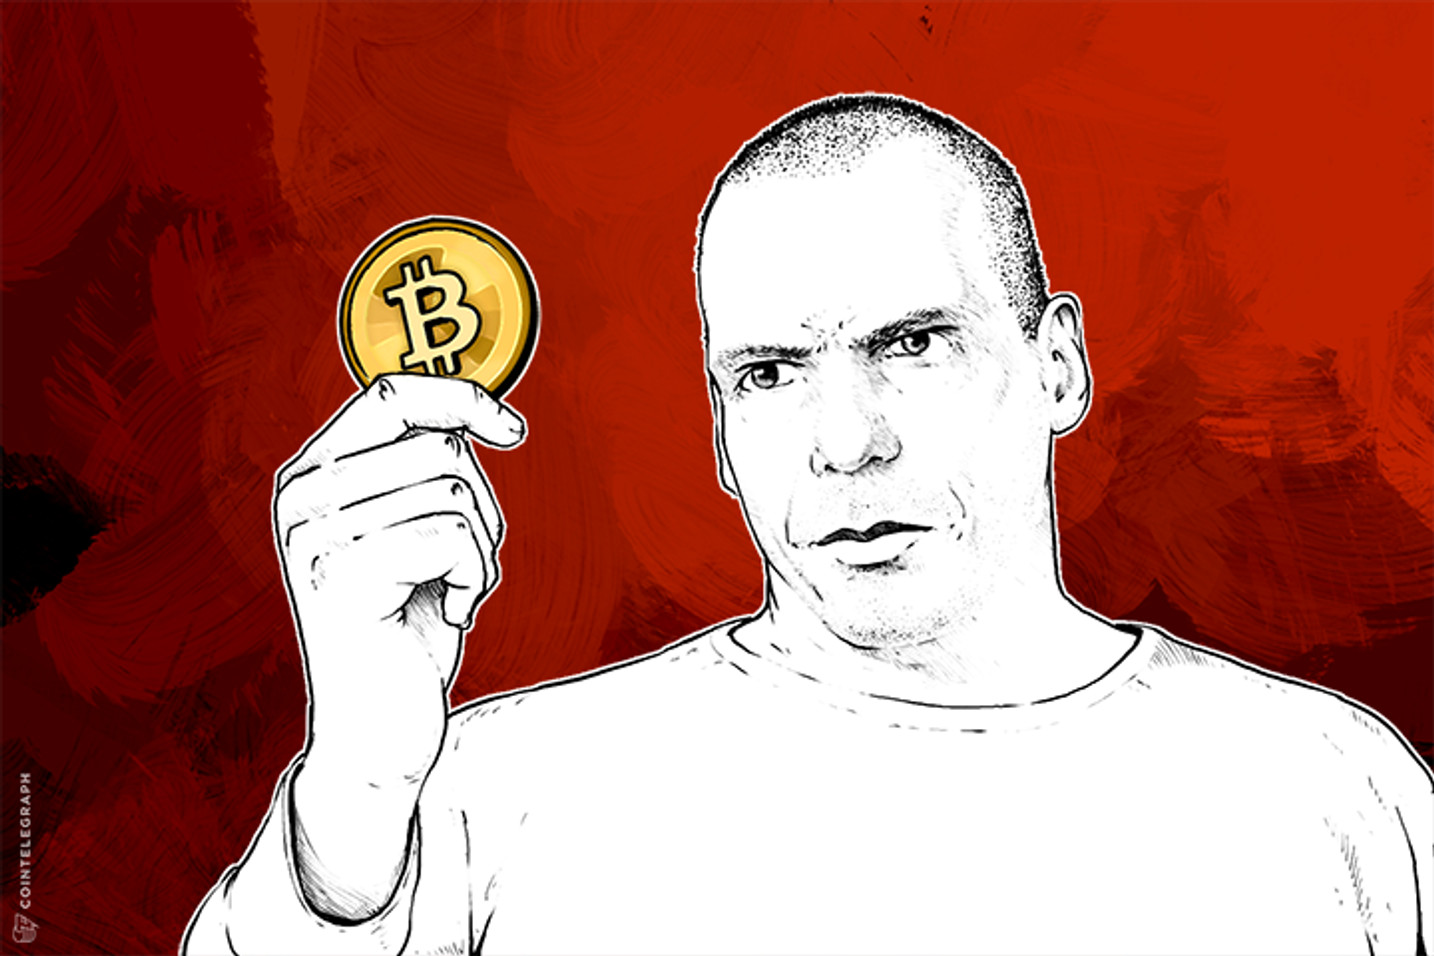 Greece's New Finance Minister: Bitcoin 'Highly Problematic Currency'